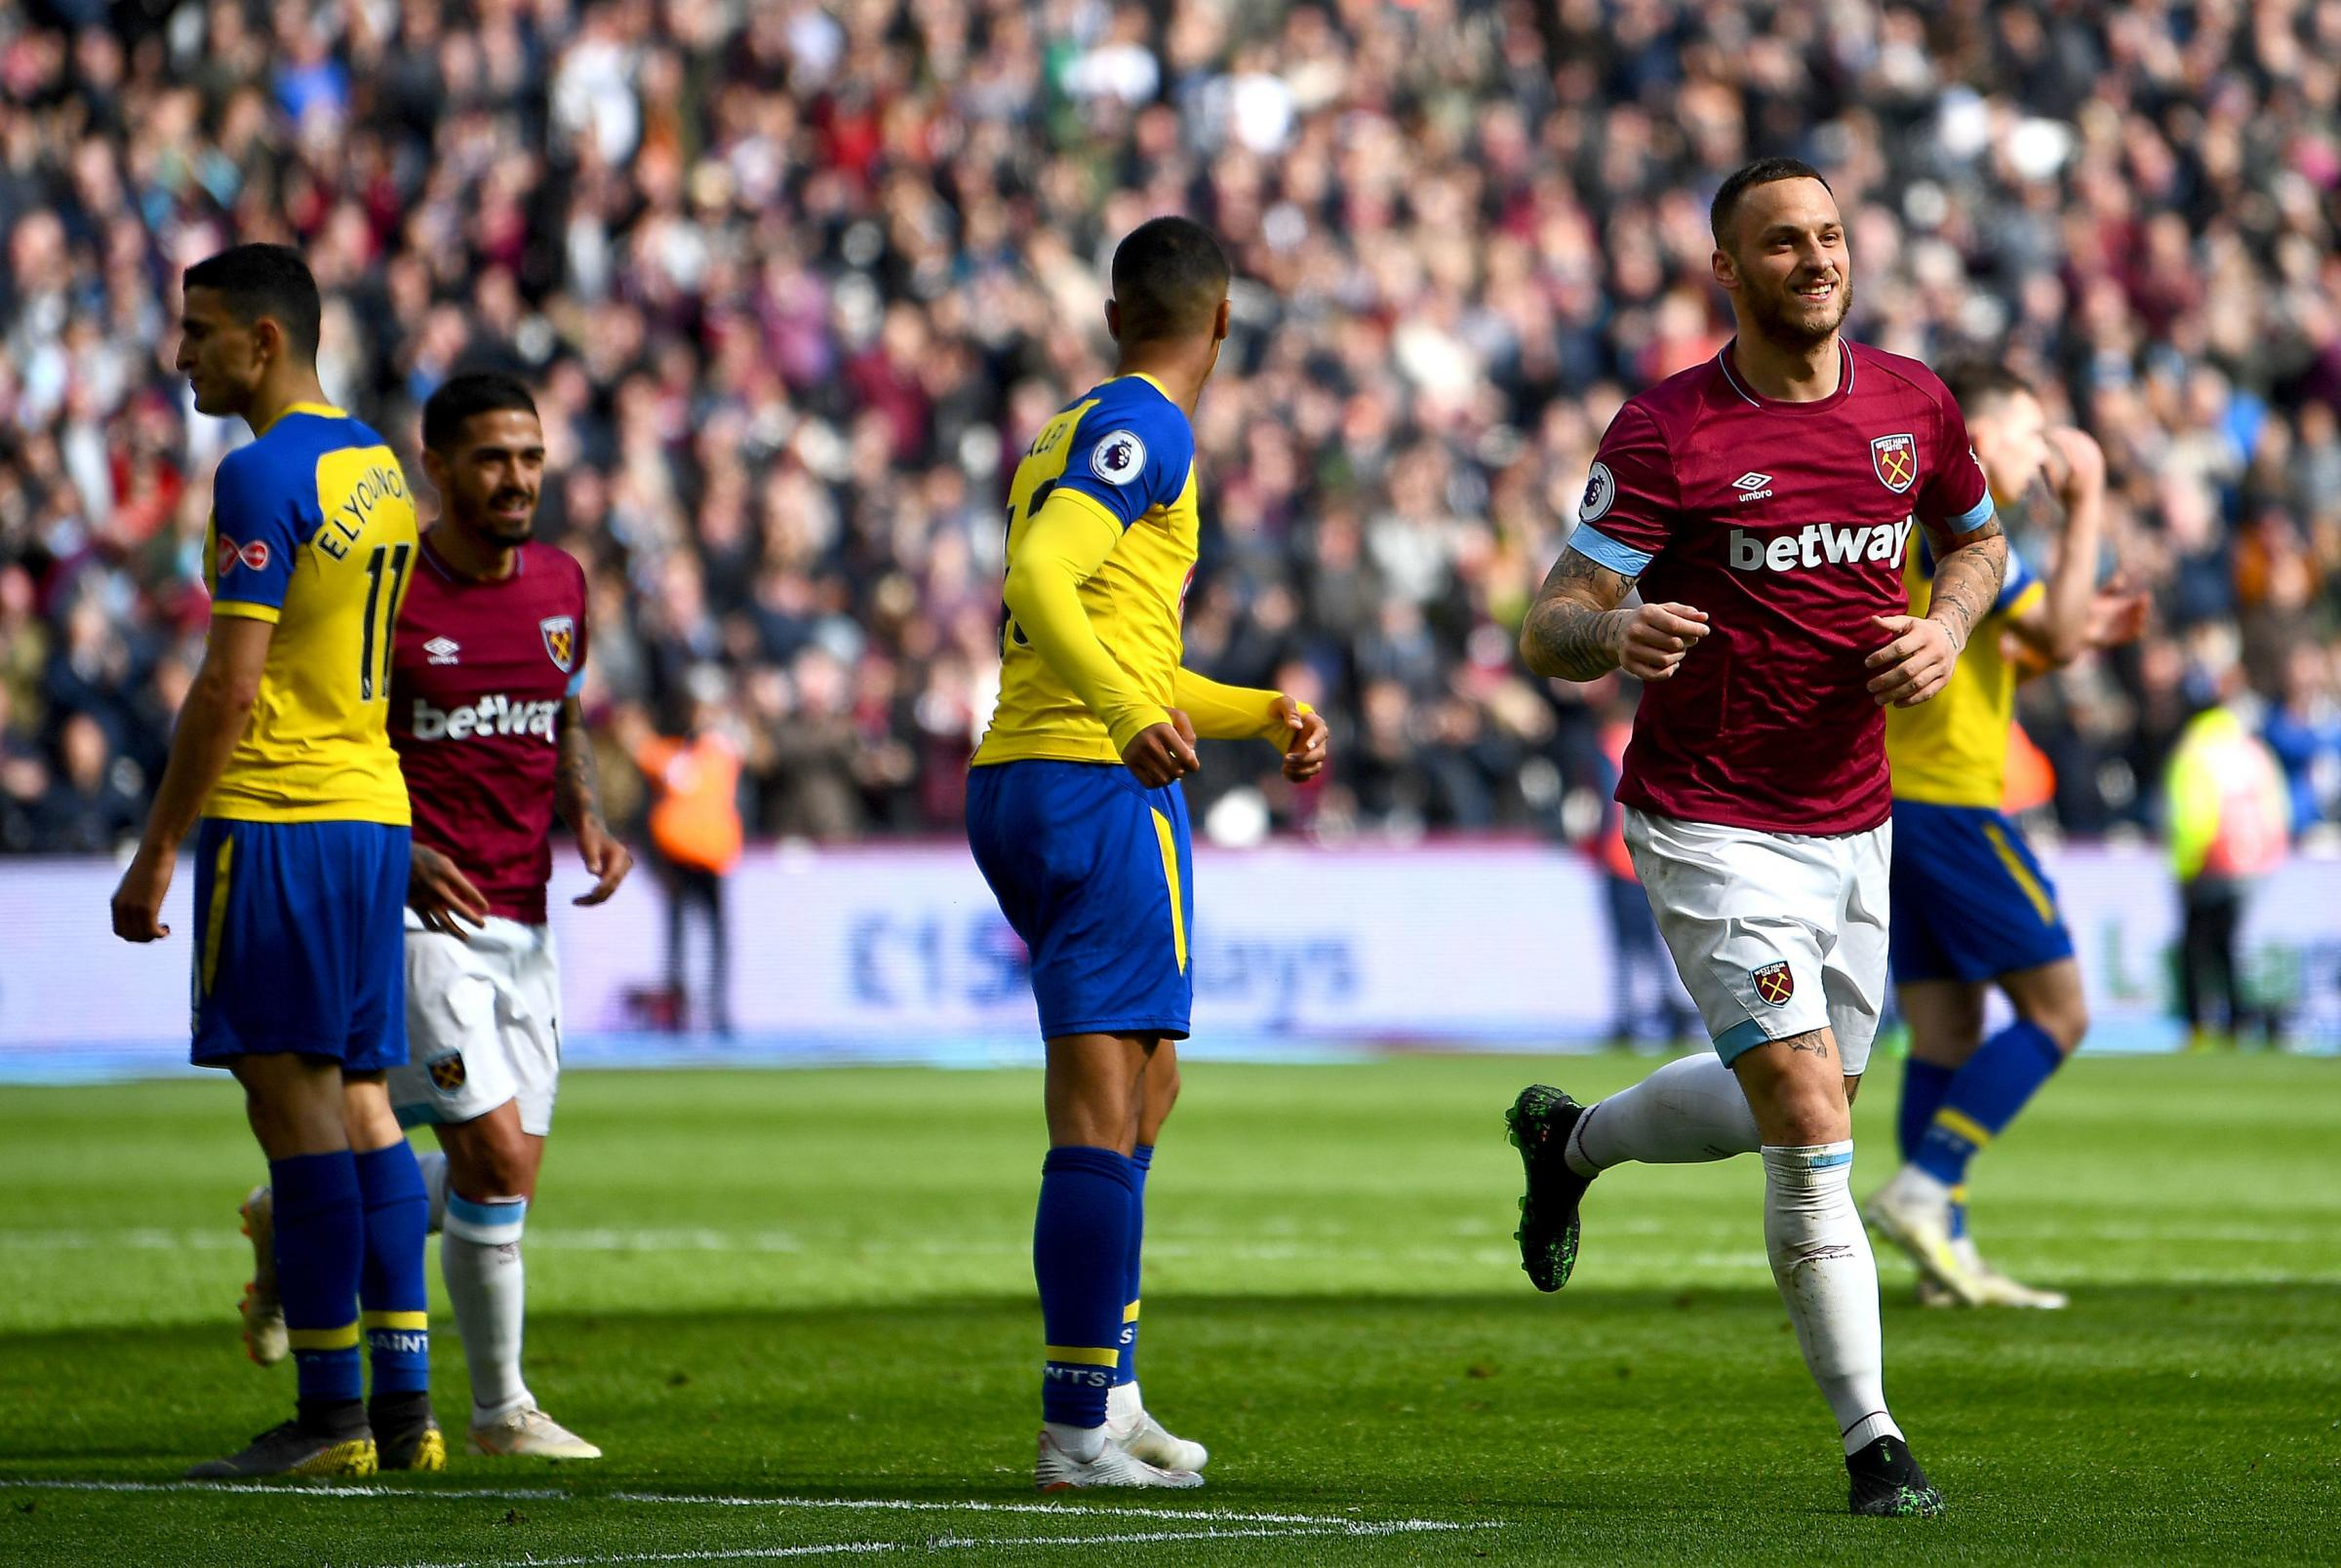 Saints look dejected as Marko Arnautovic scores his second for West Ham